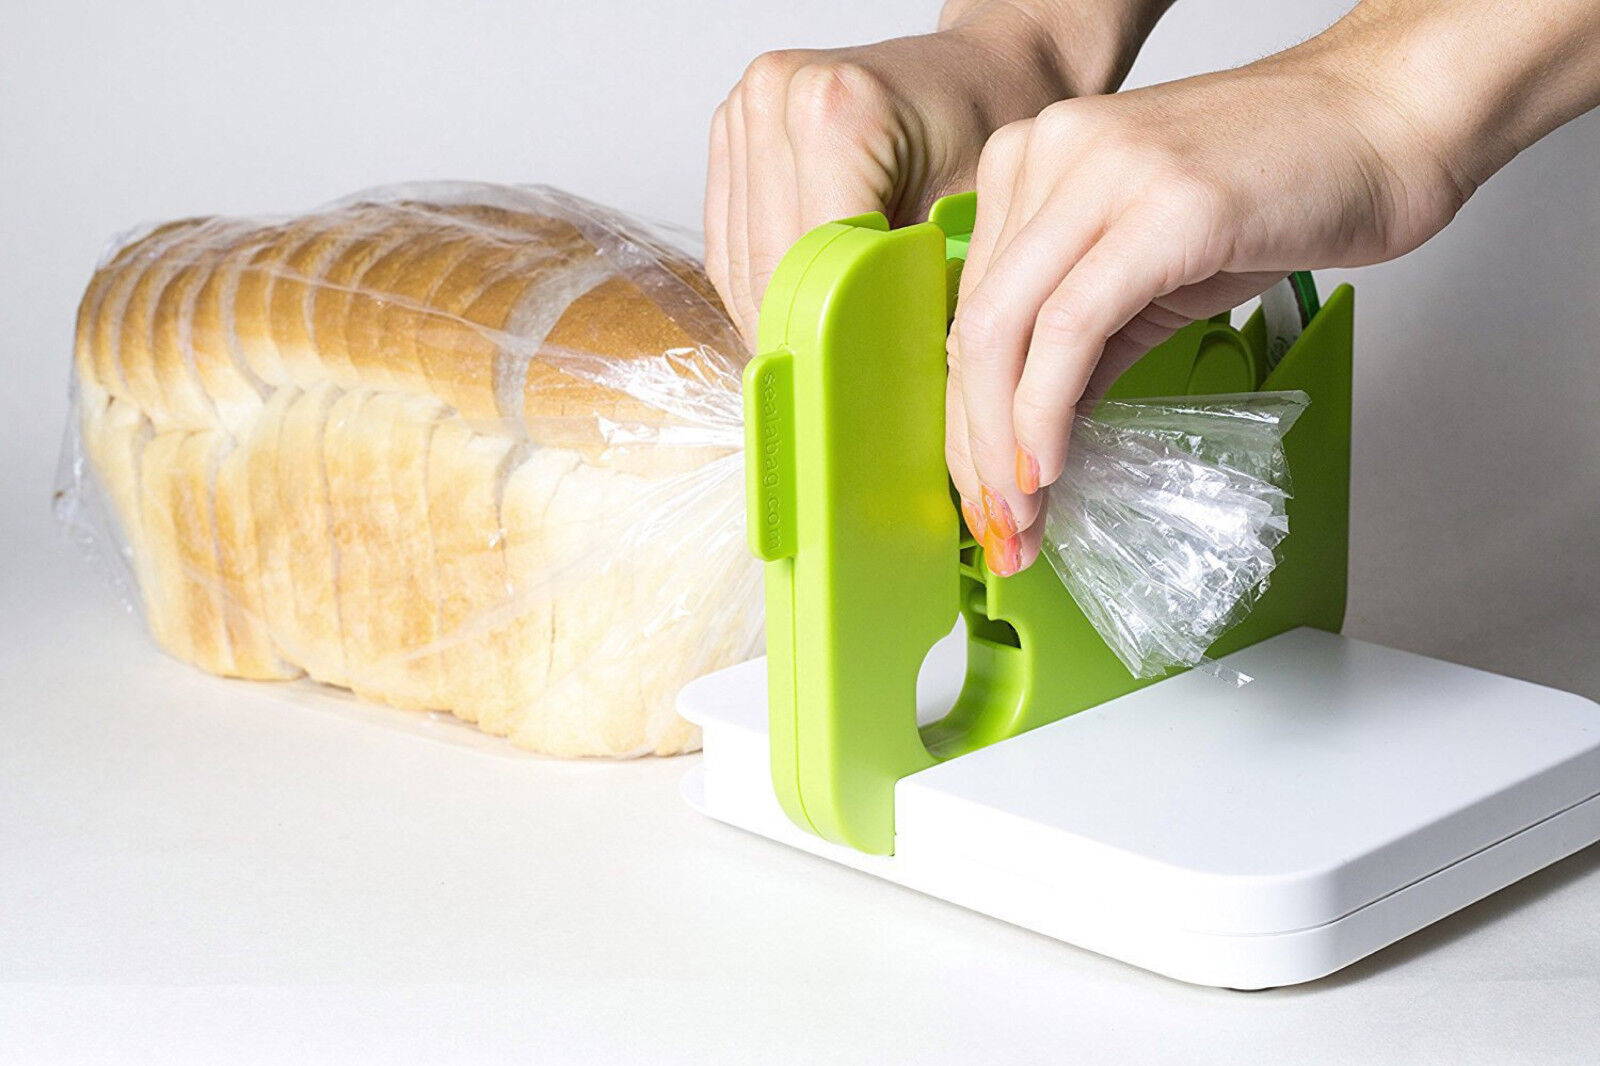 Bag Sealing Device Food Saver Portable Bag Sealer Kitchen gadget and Tools Home & Garden